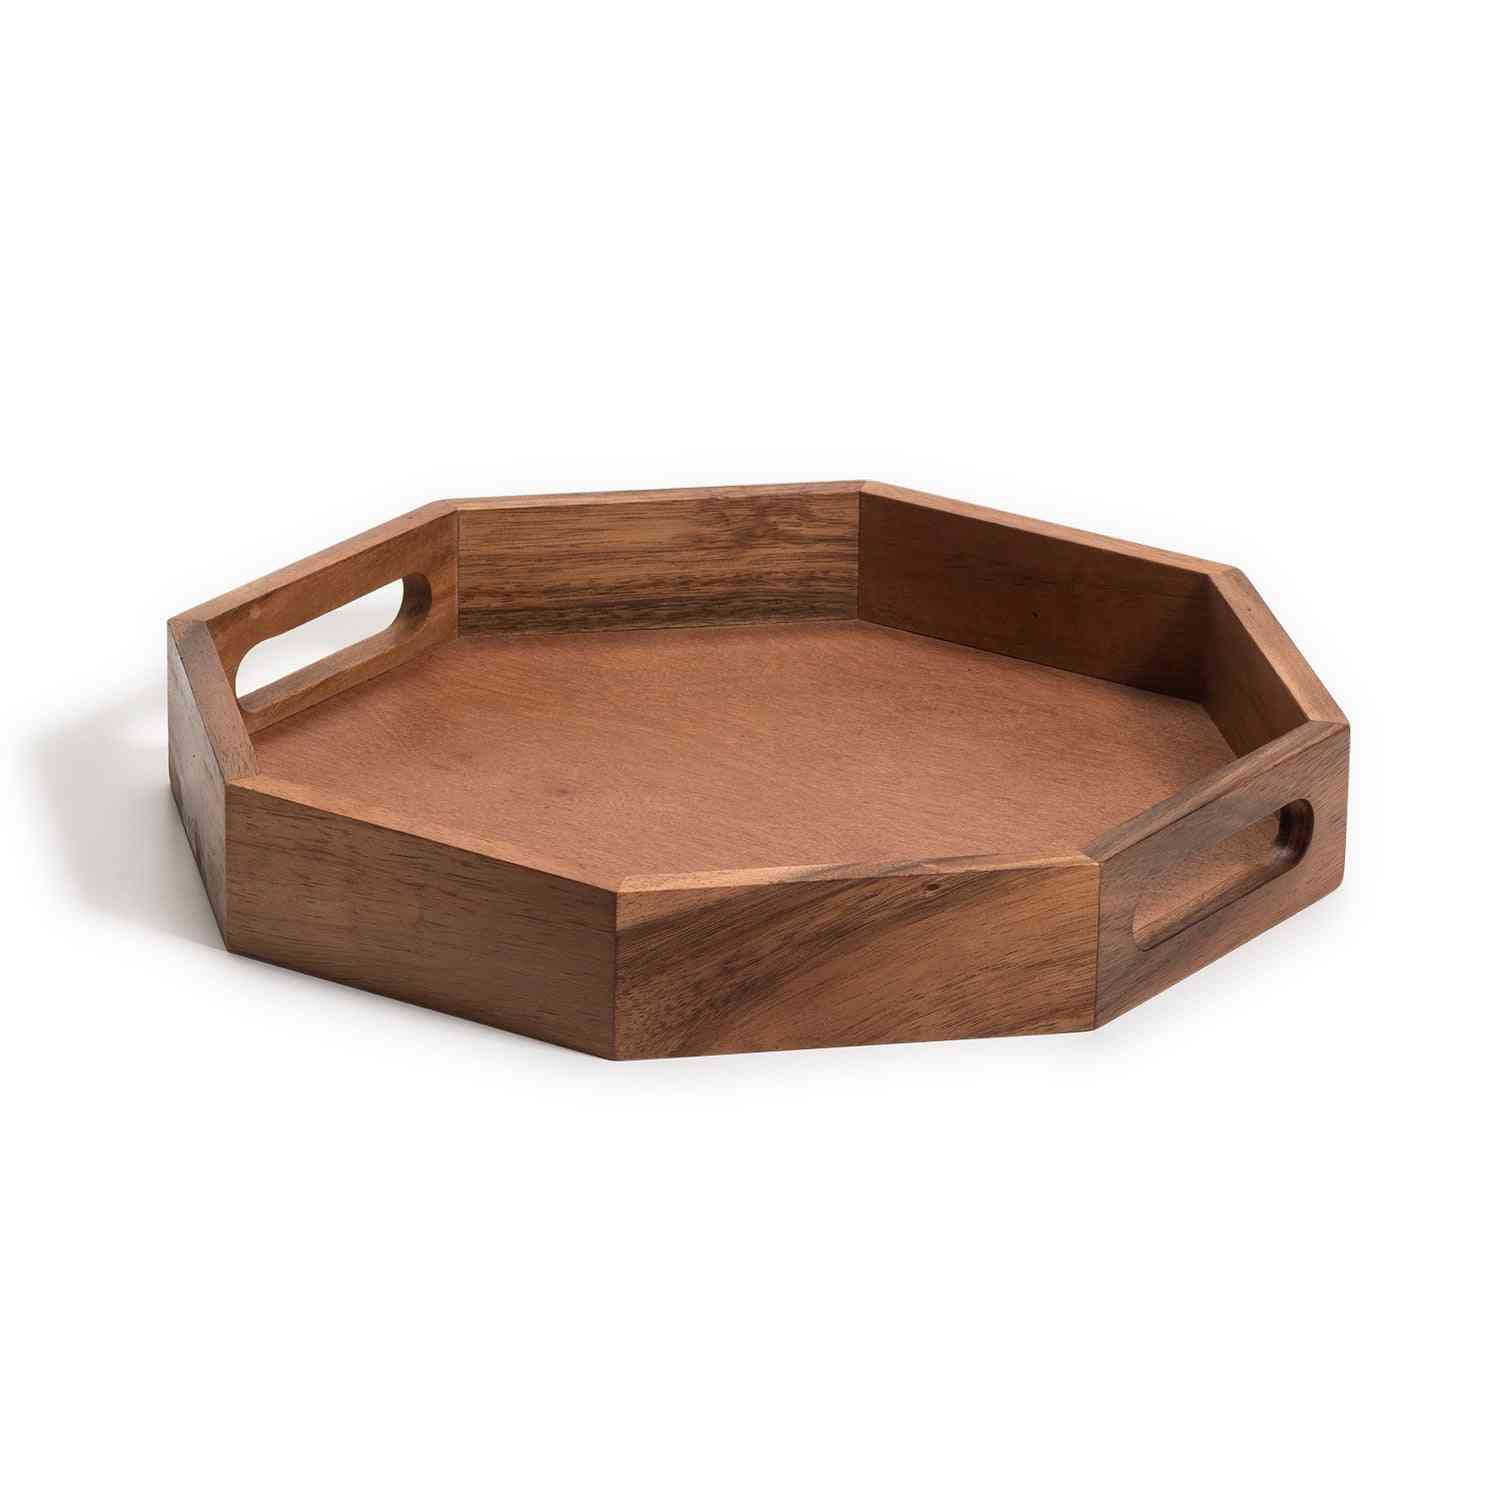 Octagon Wood Charcuterie/serving Tray 17